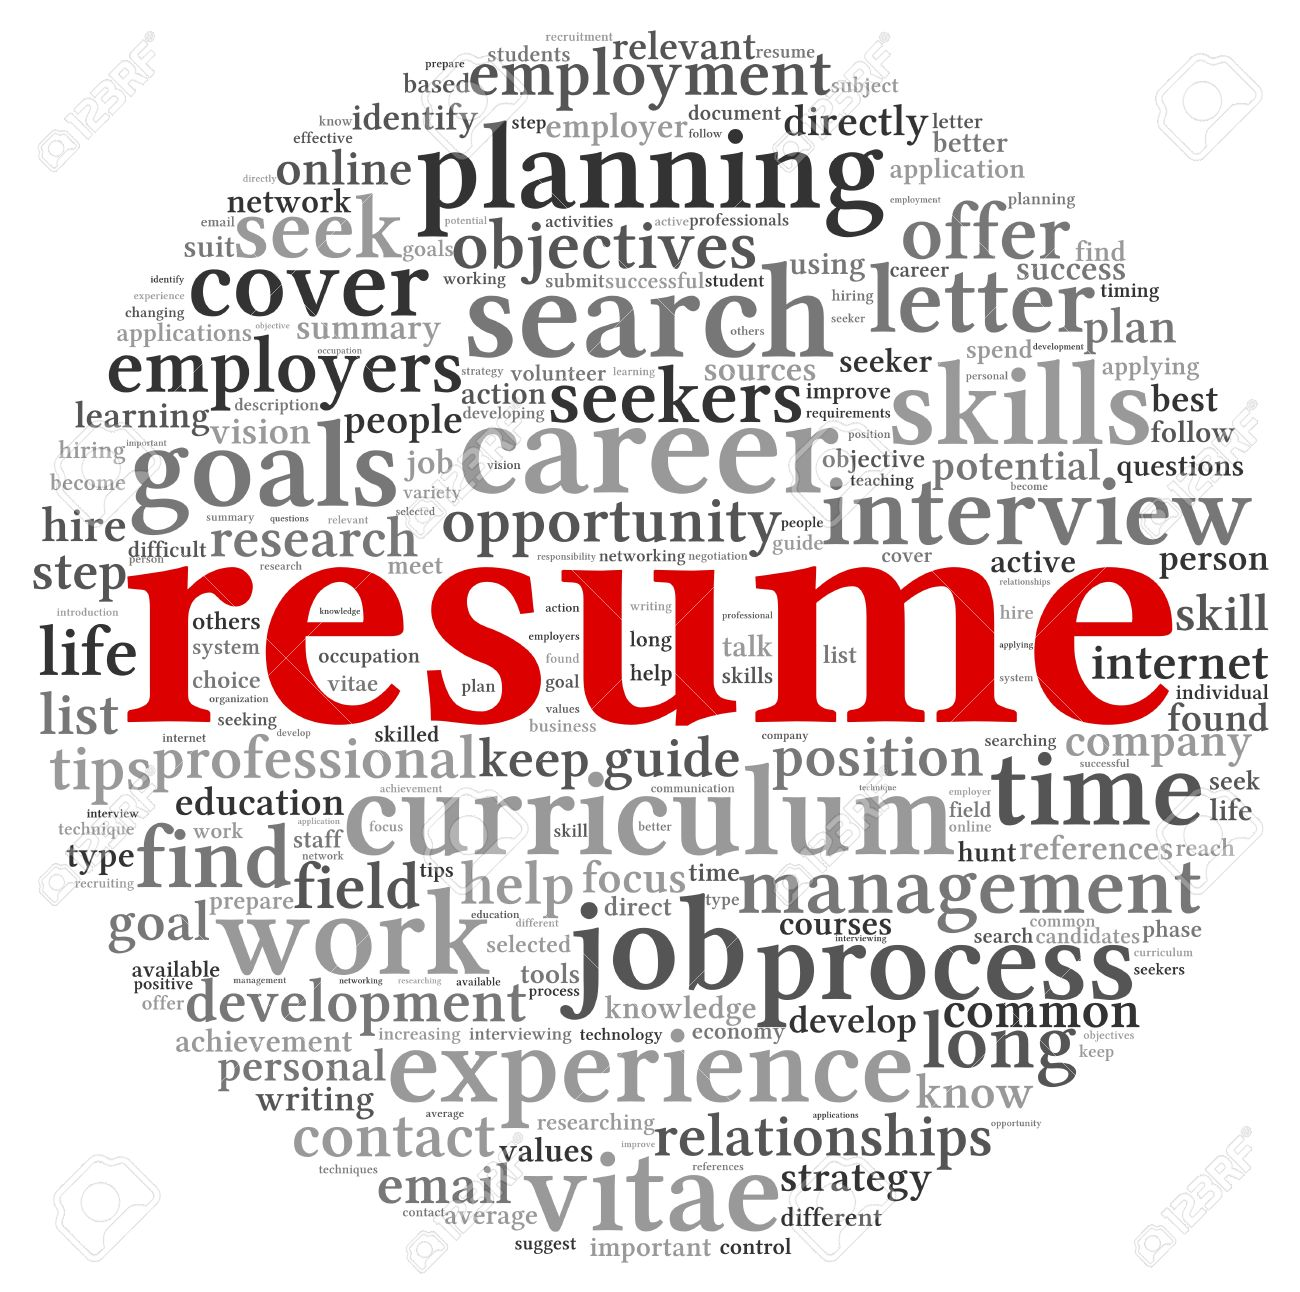 resumes have come a long way in recent years did you know that you should have more than one version of your resume attend this workshop to learn current